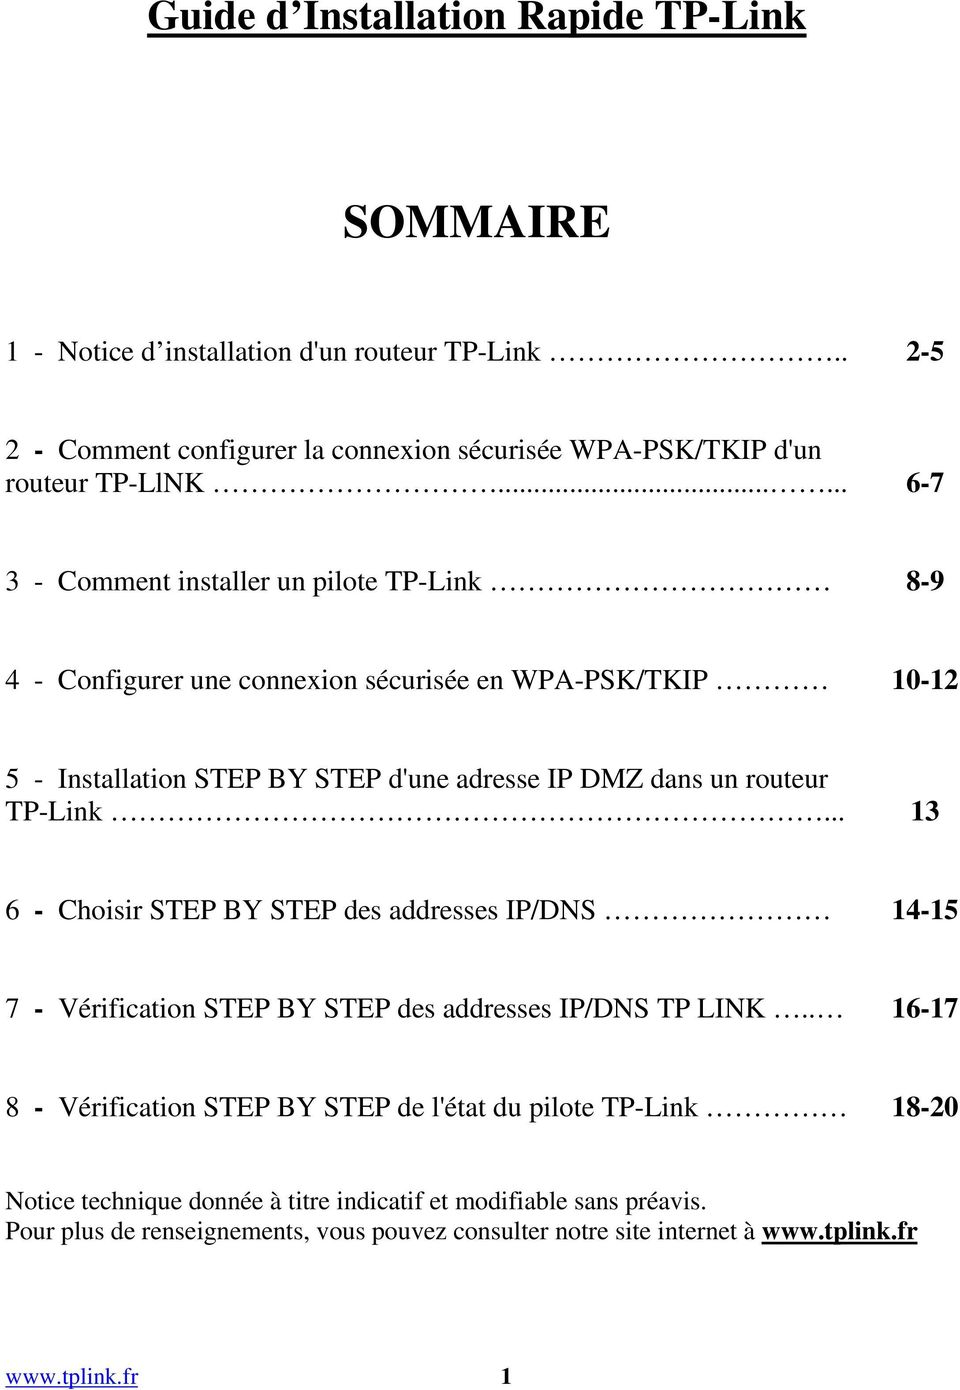 TP-Link... 13 6 - Choisir STEP BY STEP des addresses IP/DNS 14-15 7 - Vérification STEP BY STEP des addresses IP/DNS TP LINK.